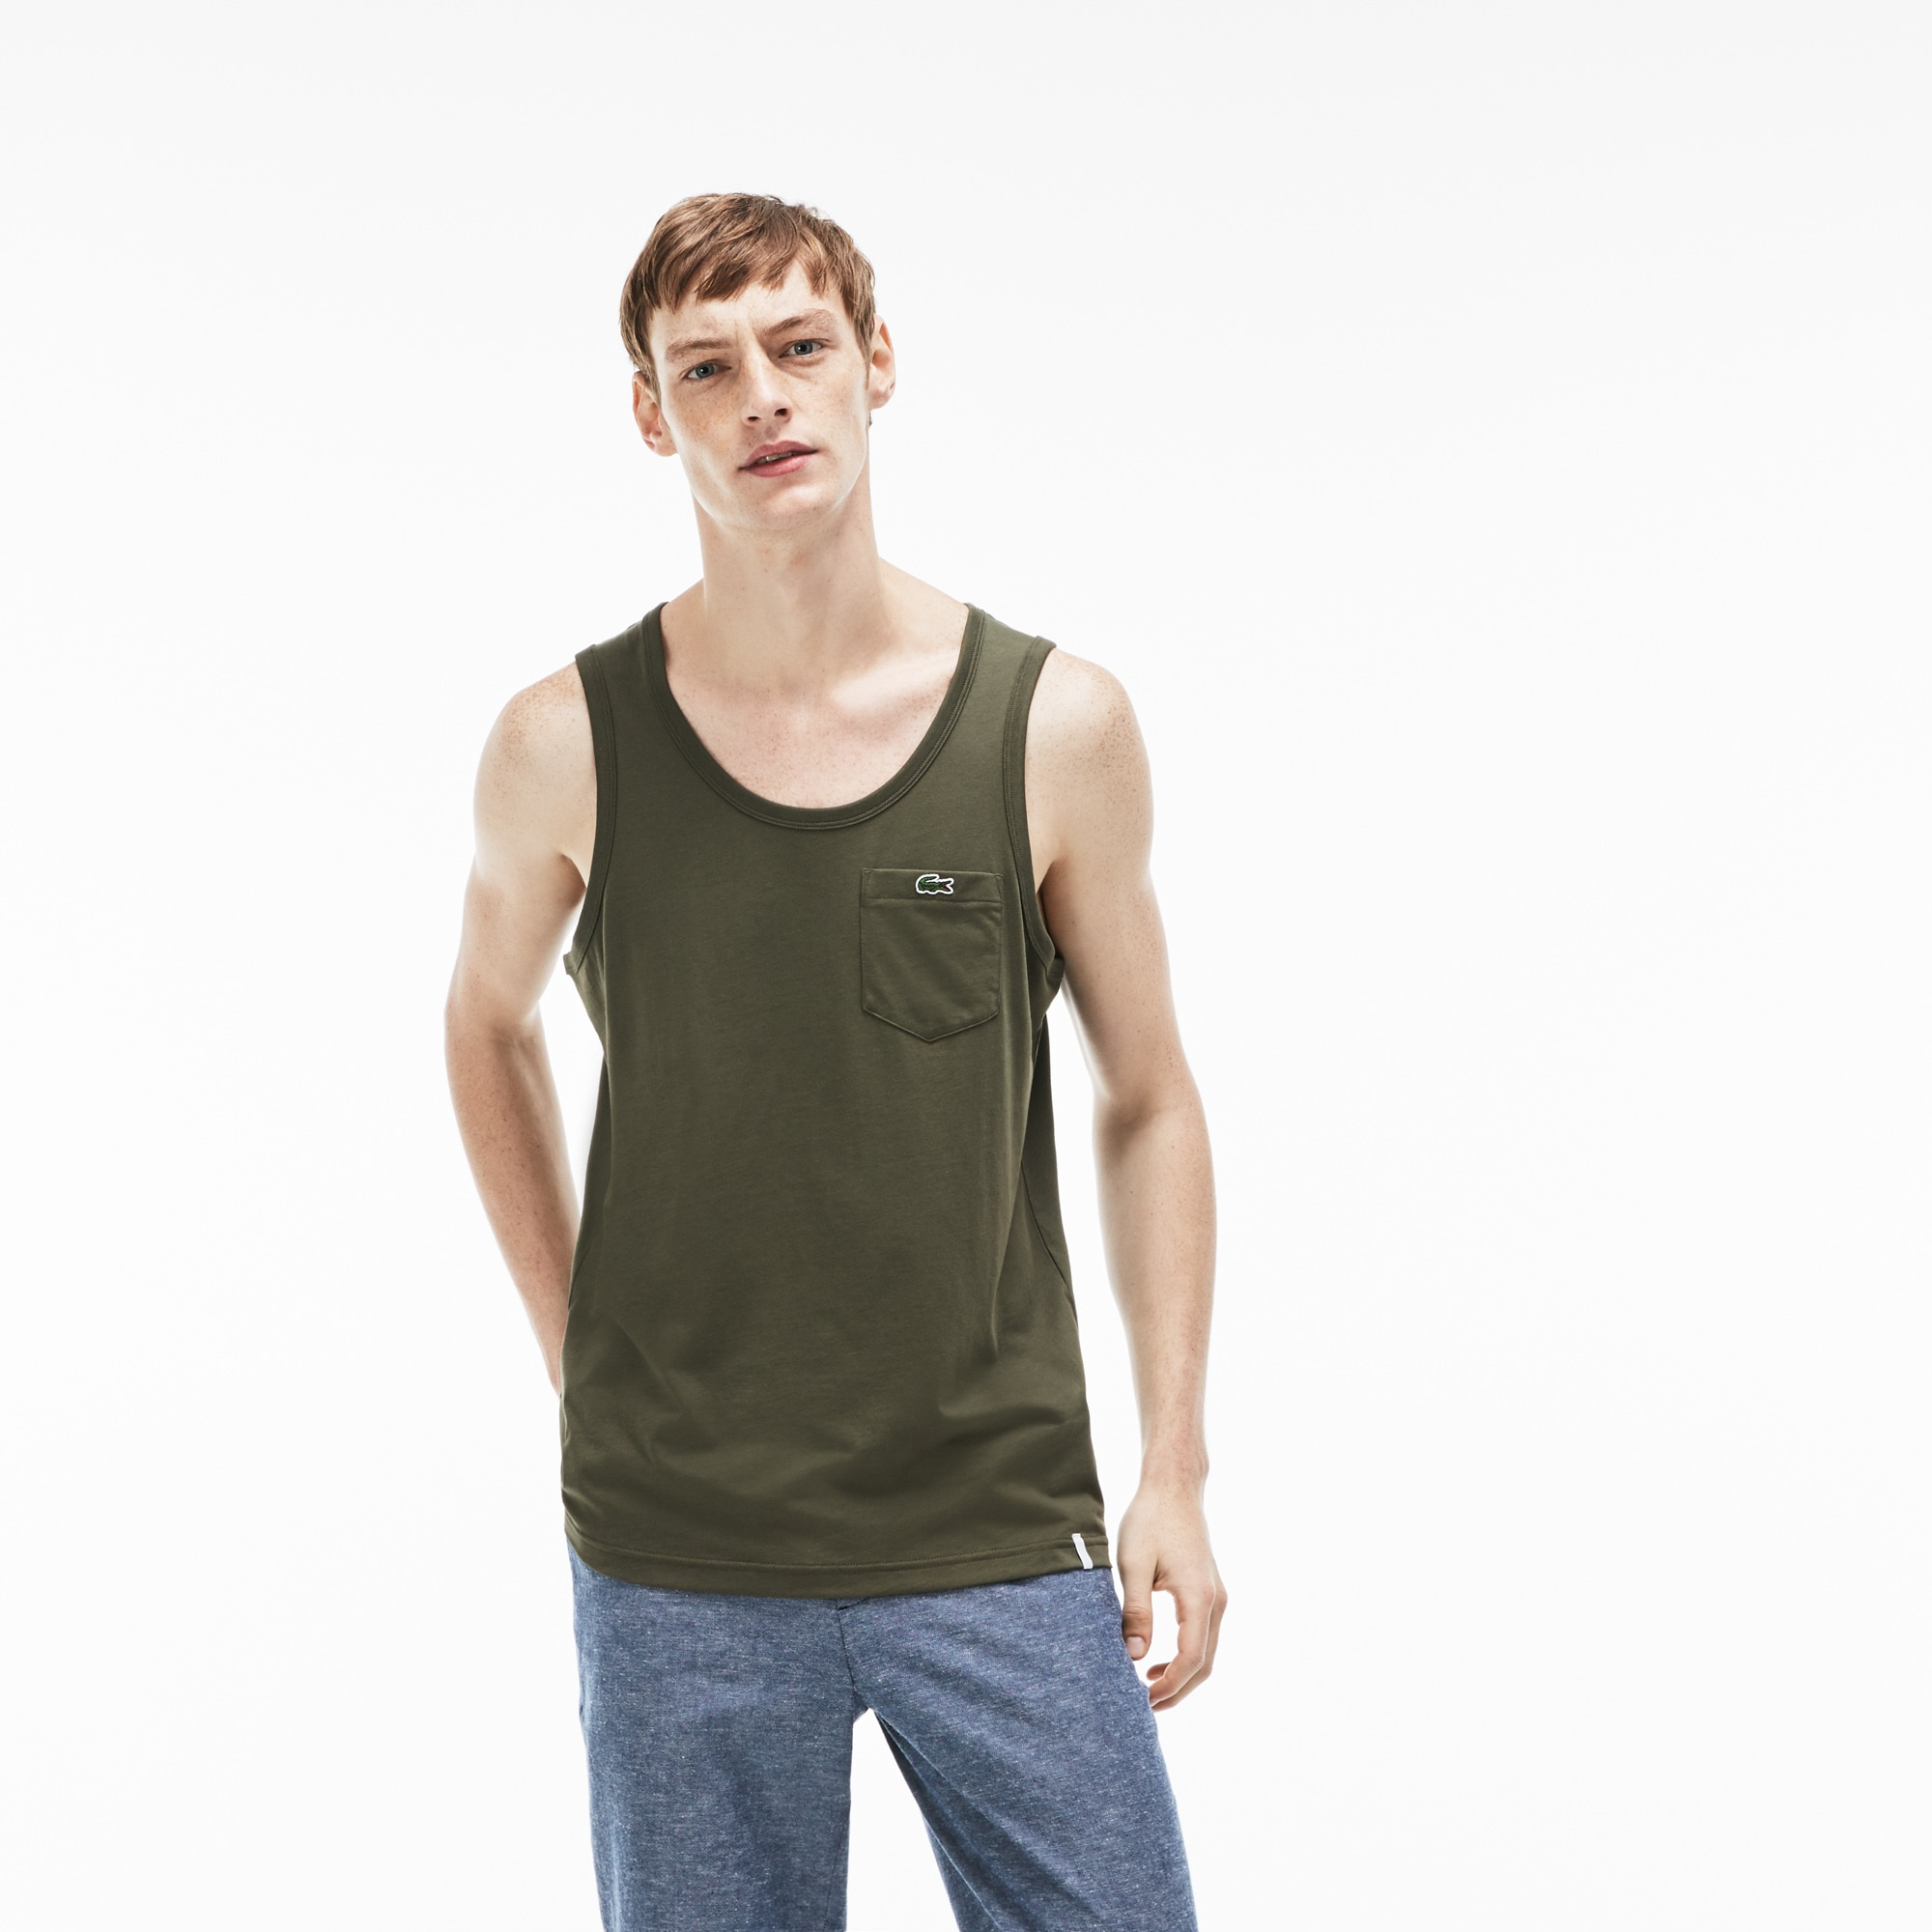 Men's Lacoste LIVE Pocket Cotton Jersey Tank Top